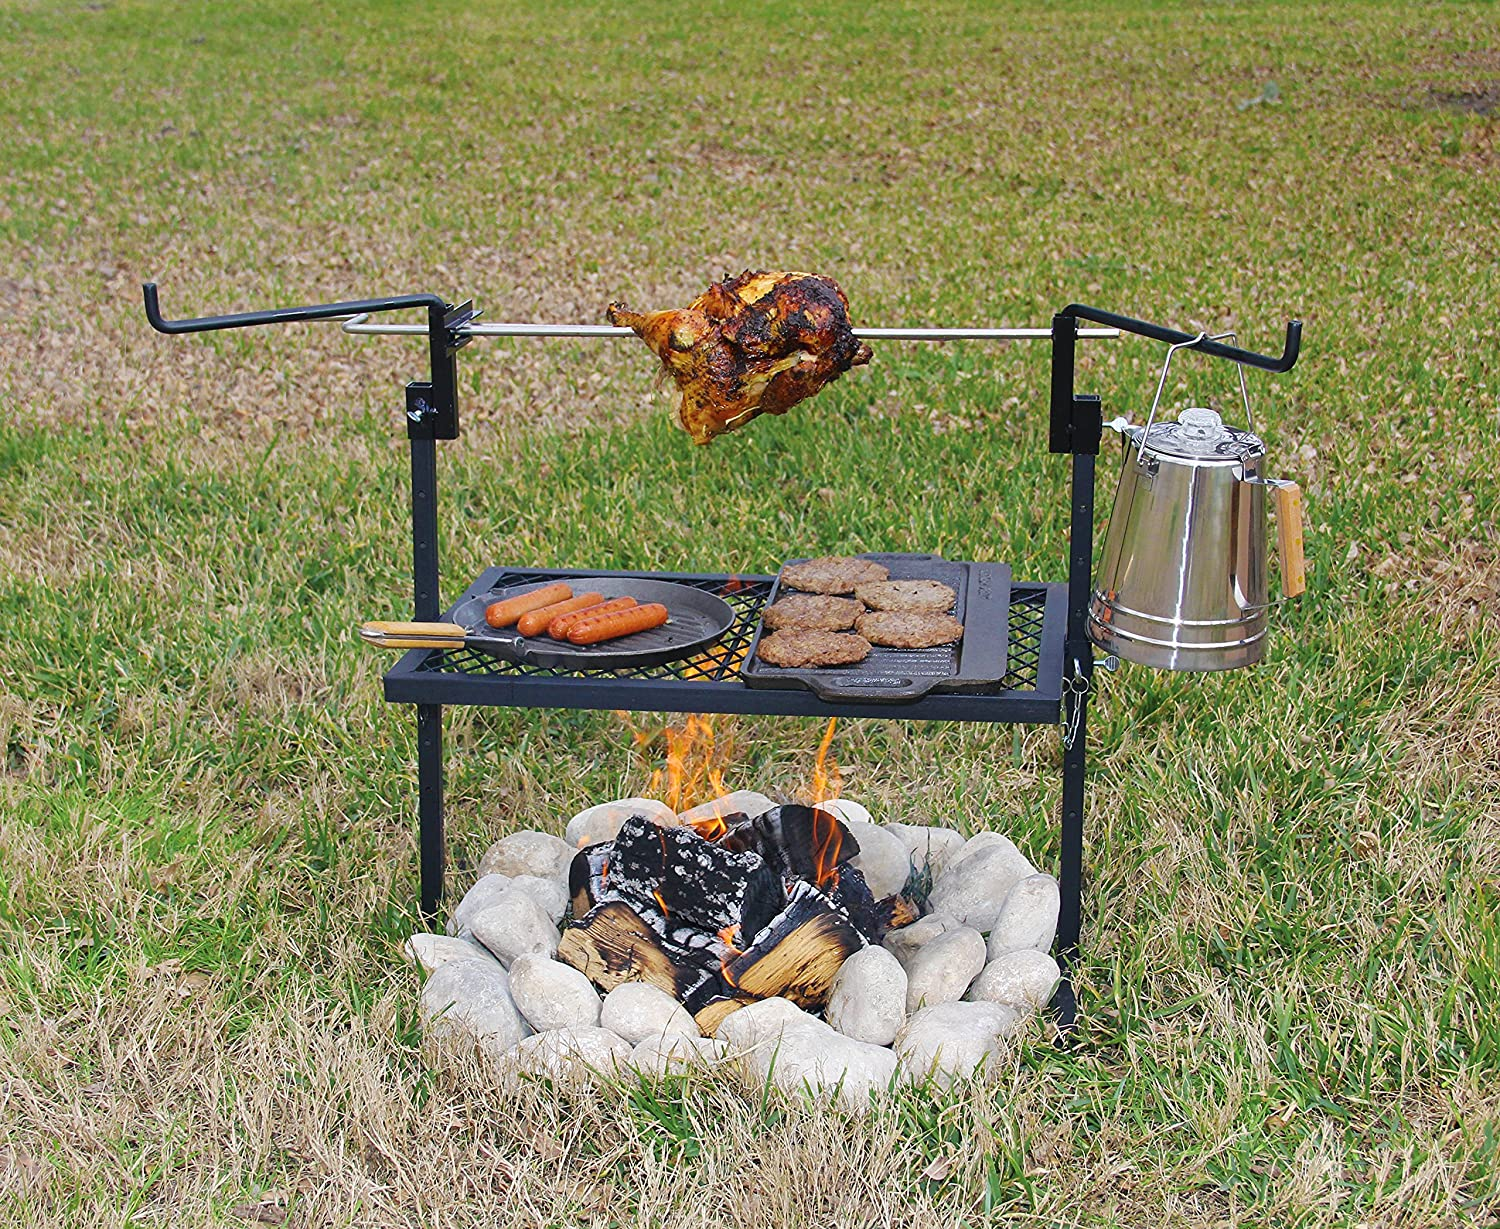 Camping Rotisserie Grill And Spit made our list of Campfire Cooking Equipment You Can't Live Without with the best tools, accessories, utensils and cookware for your camp cooking creations!